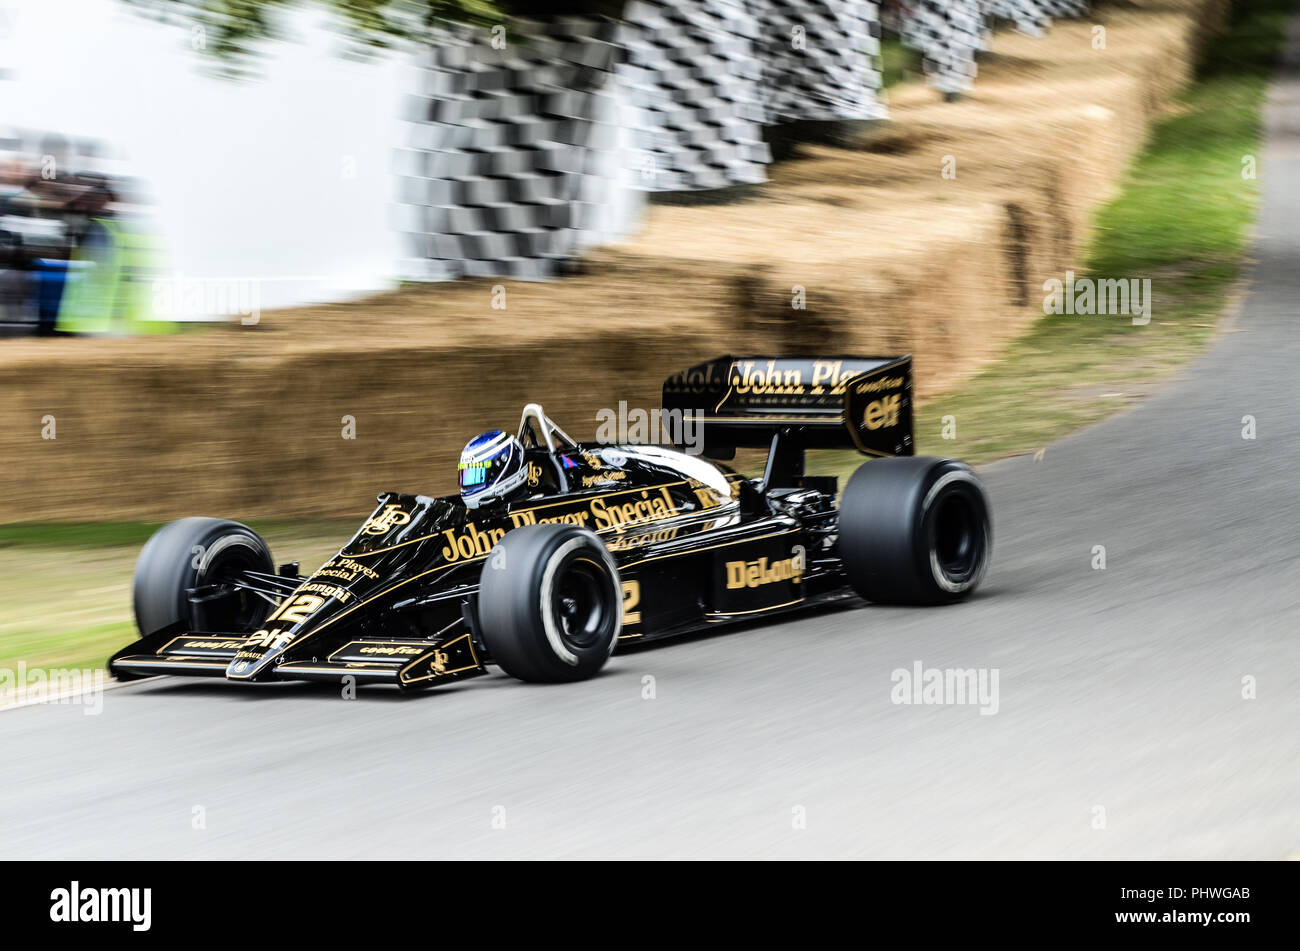 ayrton-senna-black-lotus-98t-john-player-special-formula-1-grand-prix-racing-car-at-goodwood-festival-of-speed-fast-motion-blur-lotus-renault-98t-PHWGAB.jpg